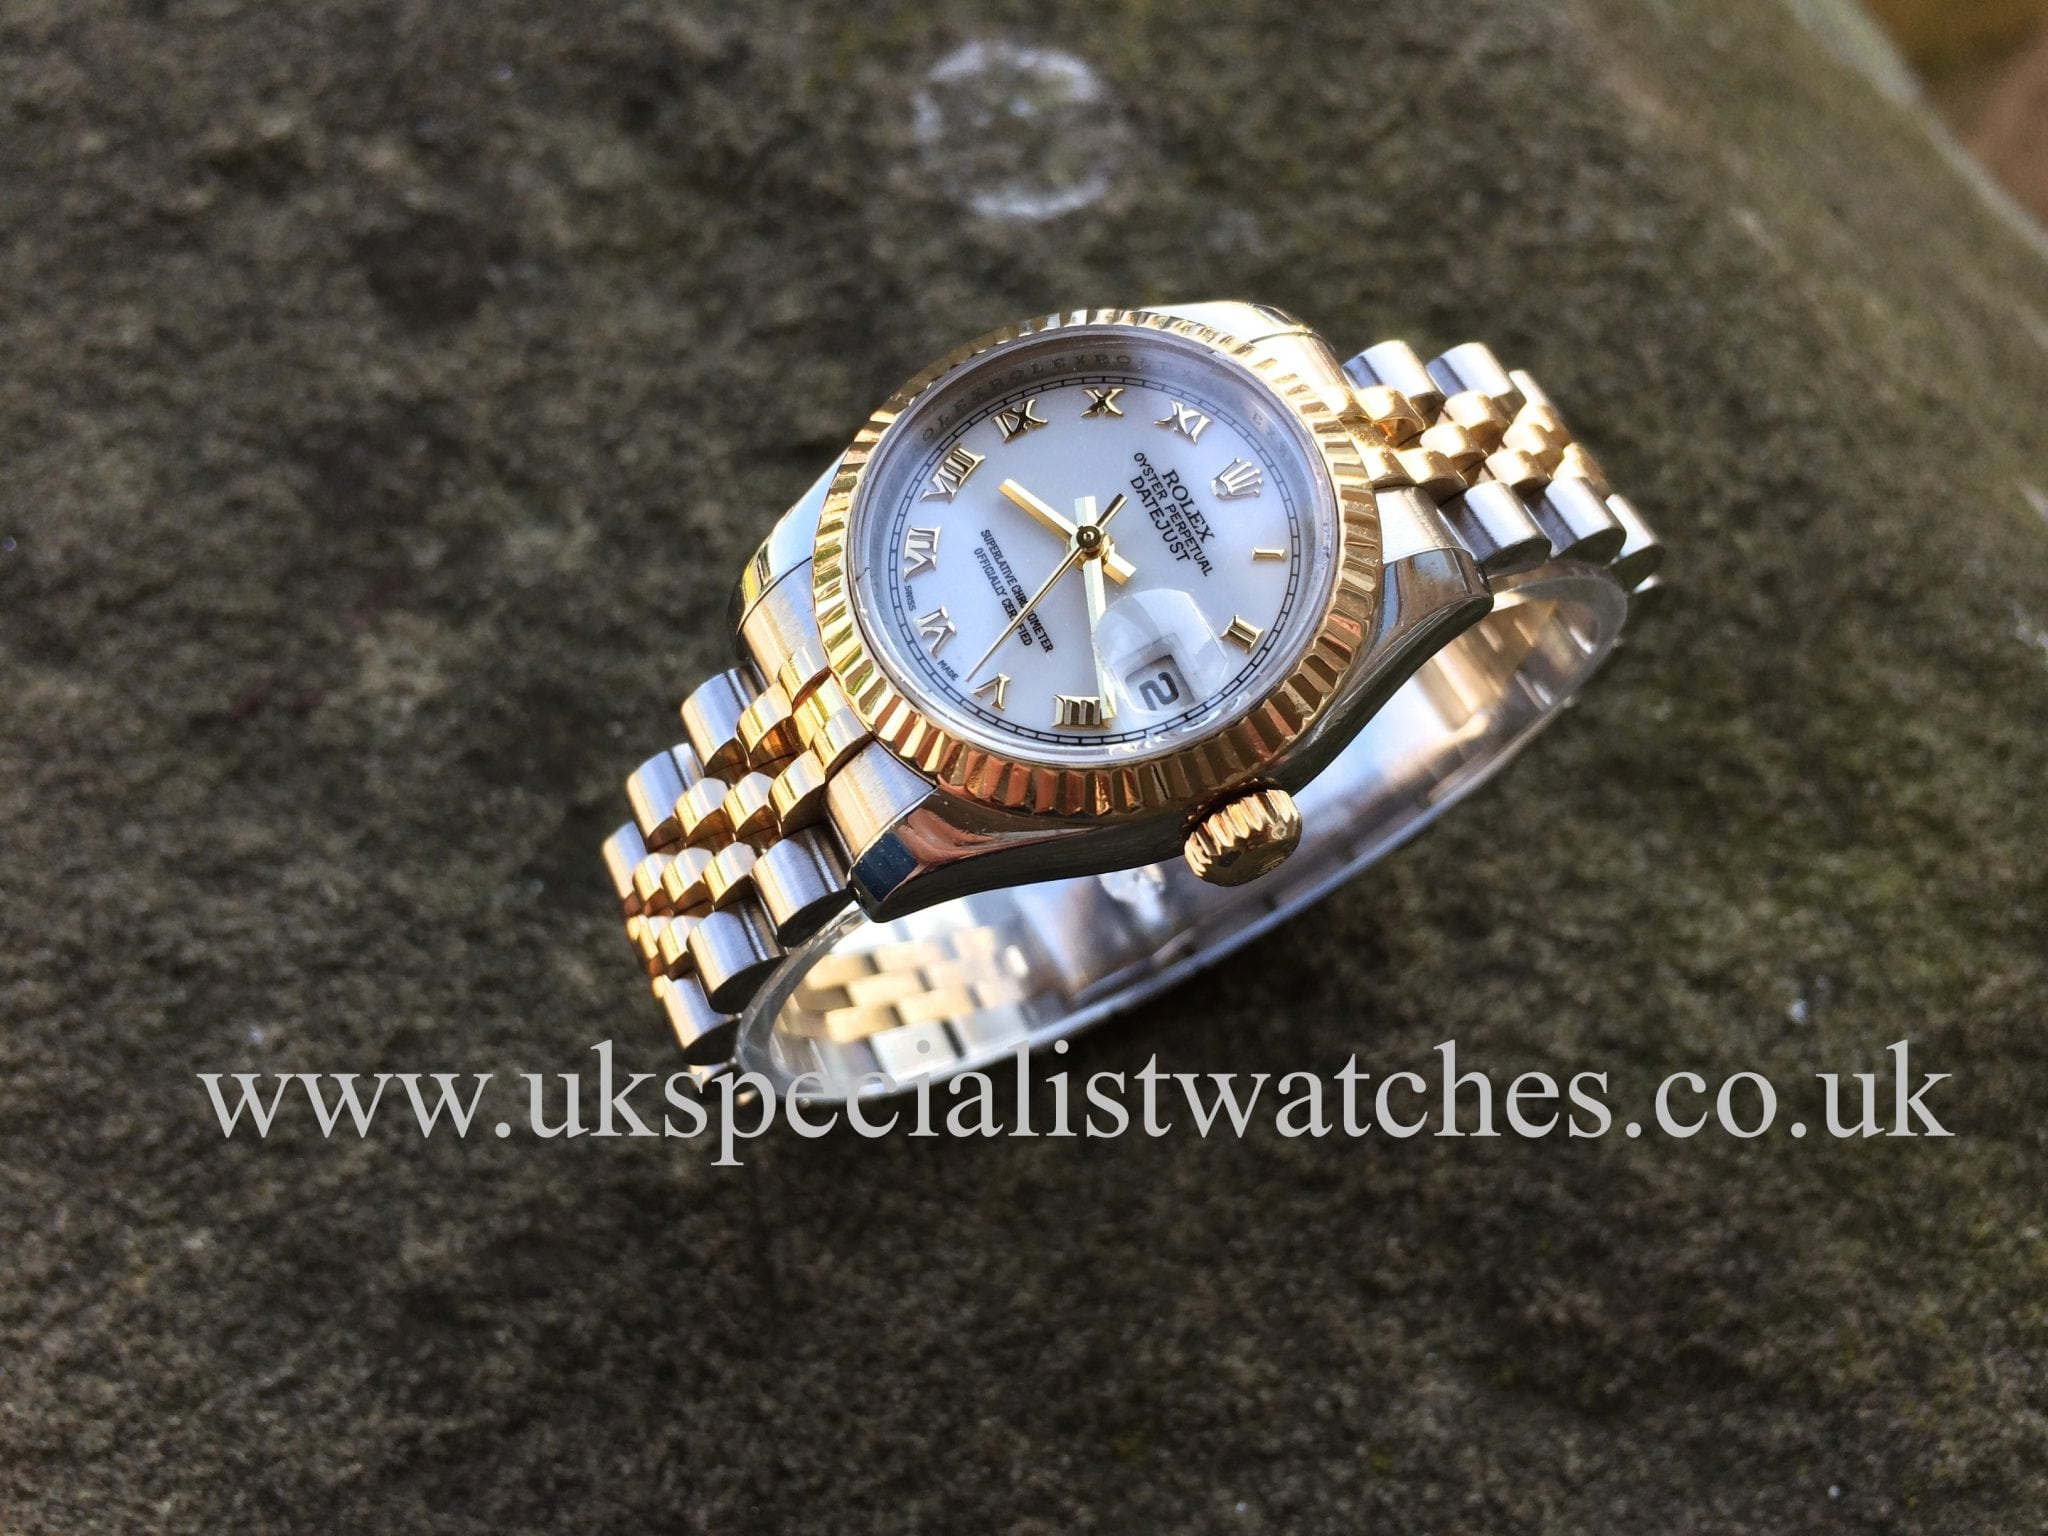 blair model watches com kors watch mini watchshop ladies michael